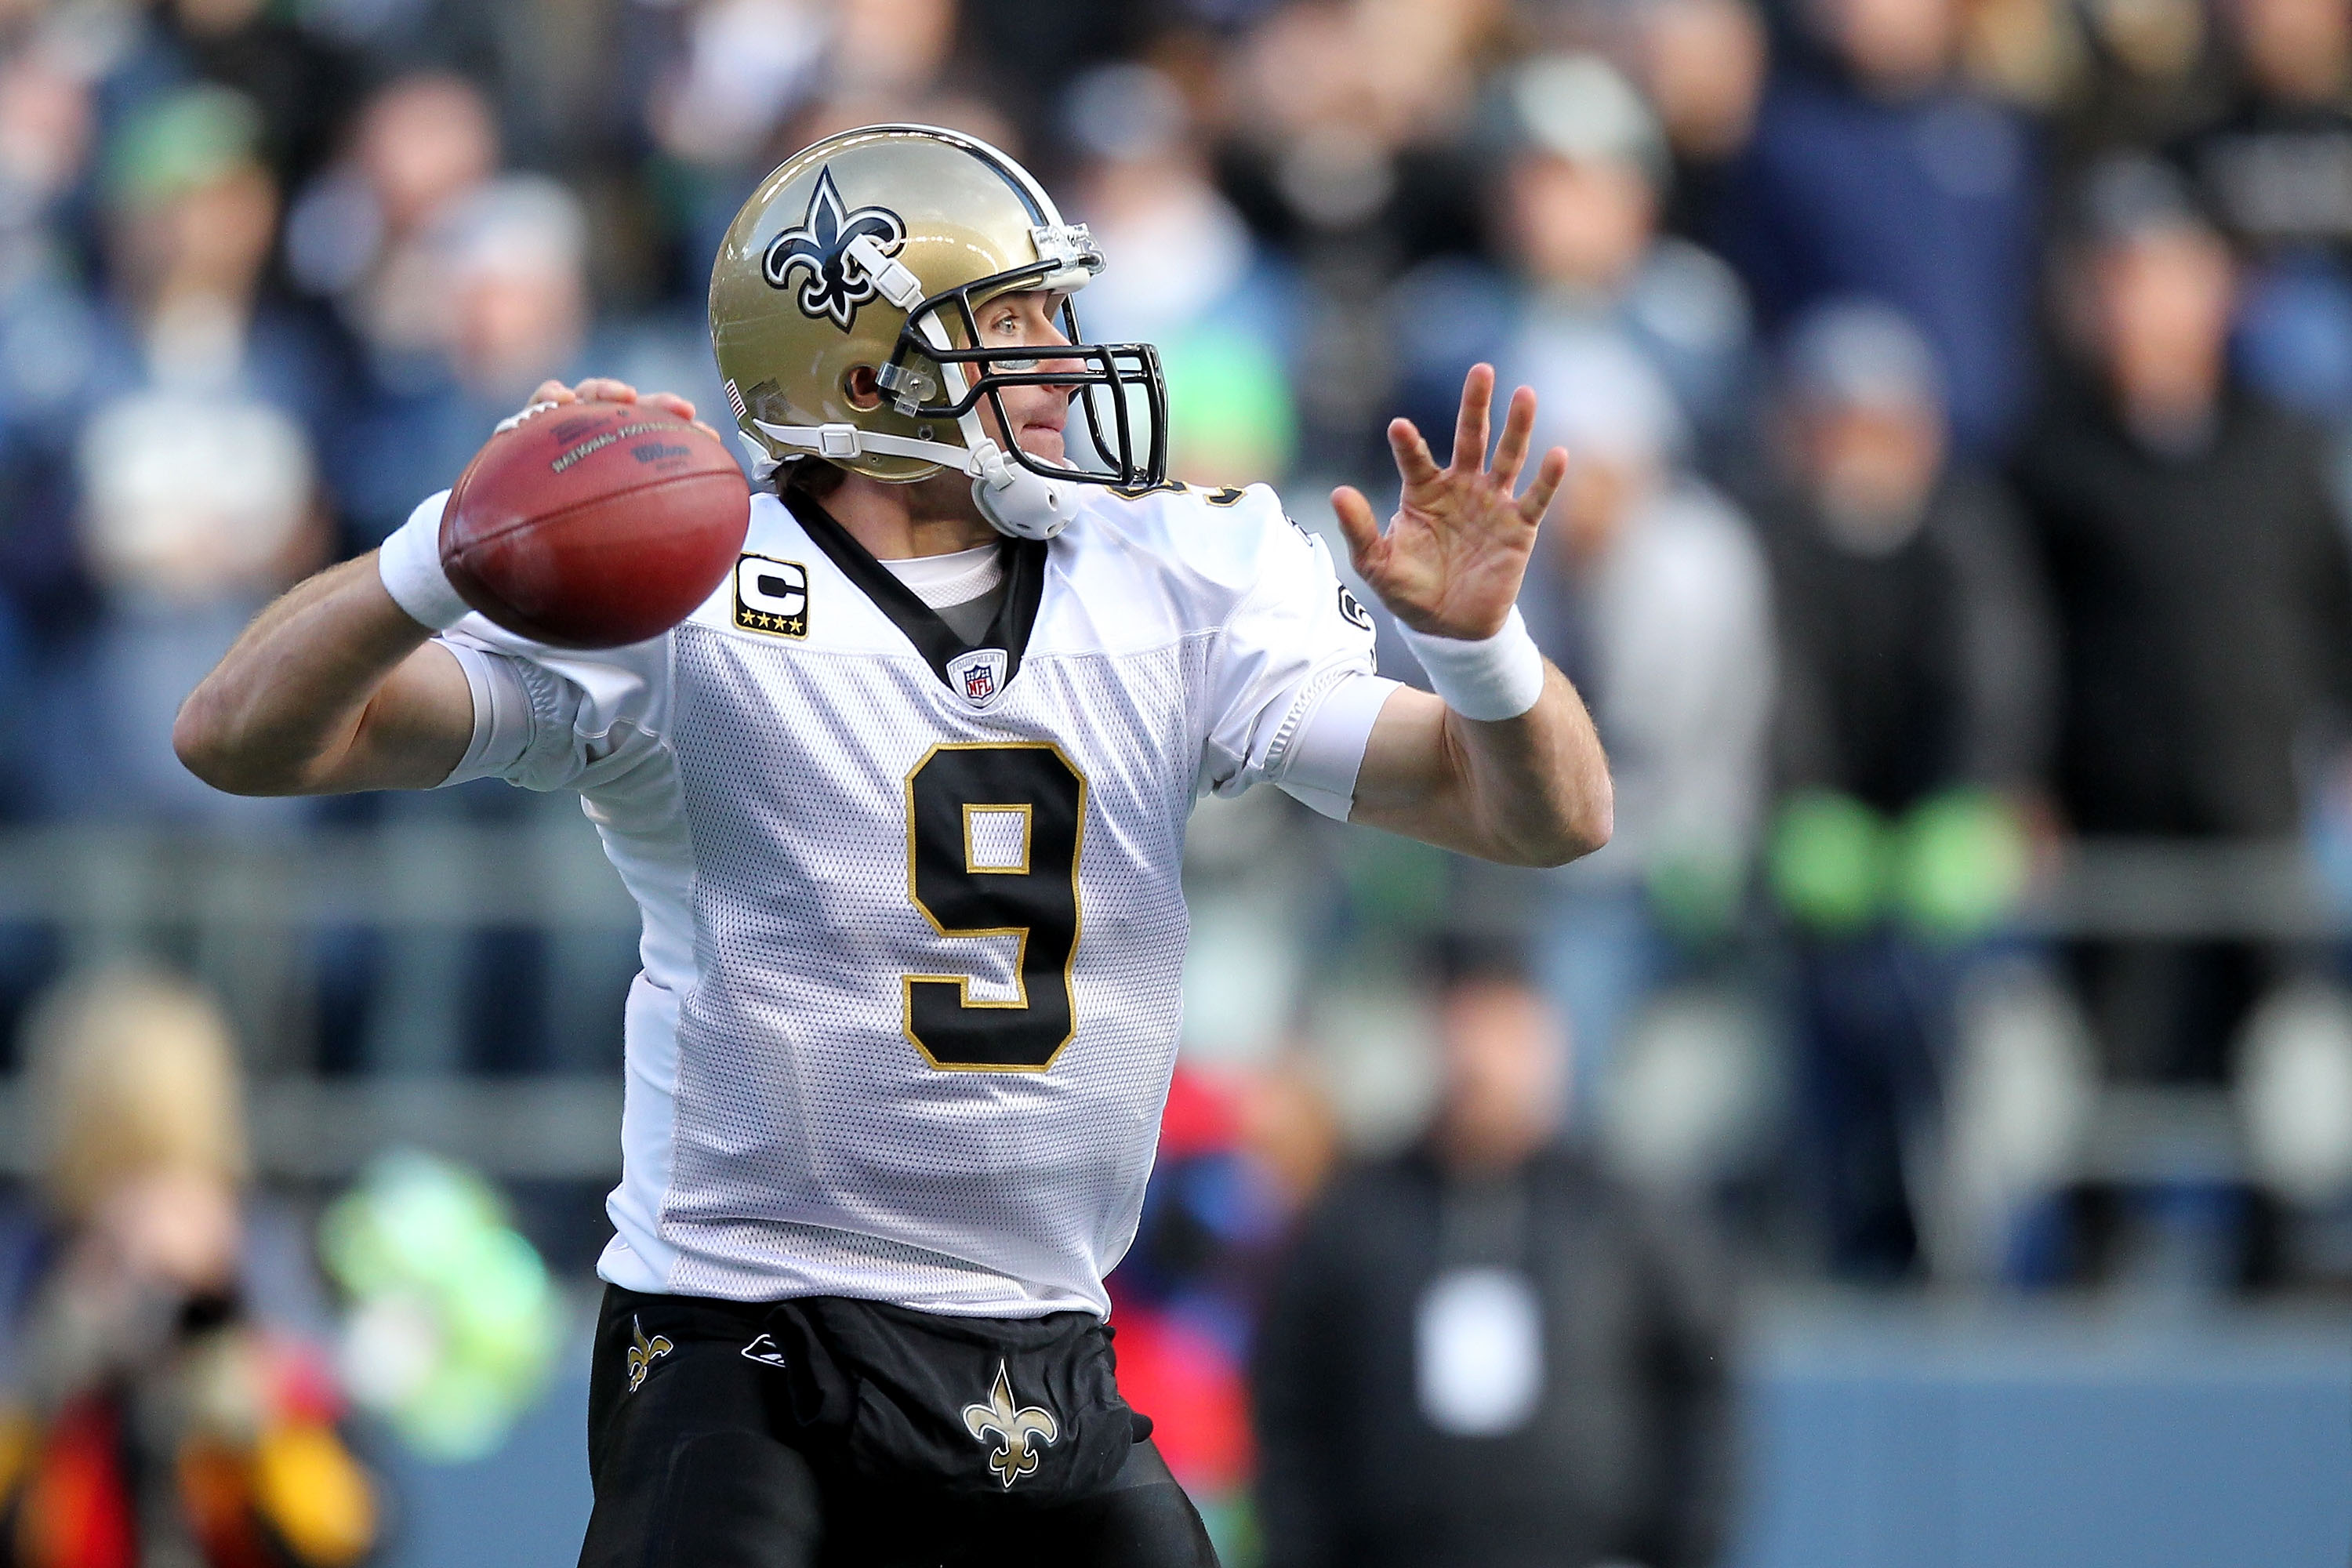 Drew Brees of the New Orleans Saints